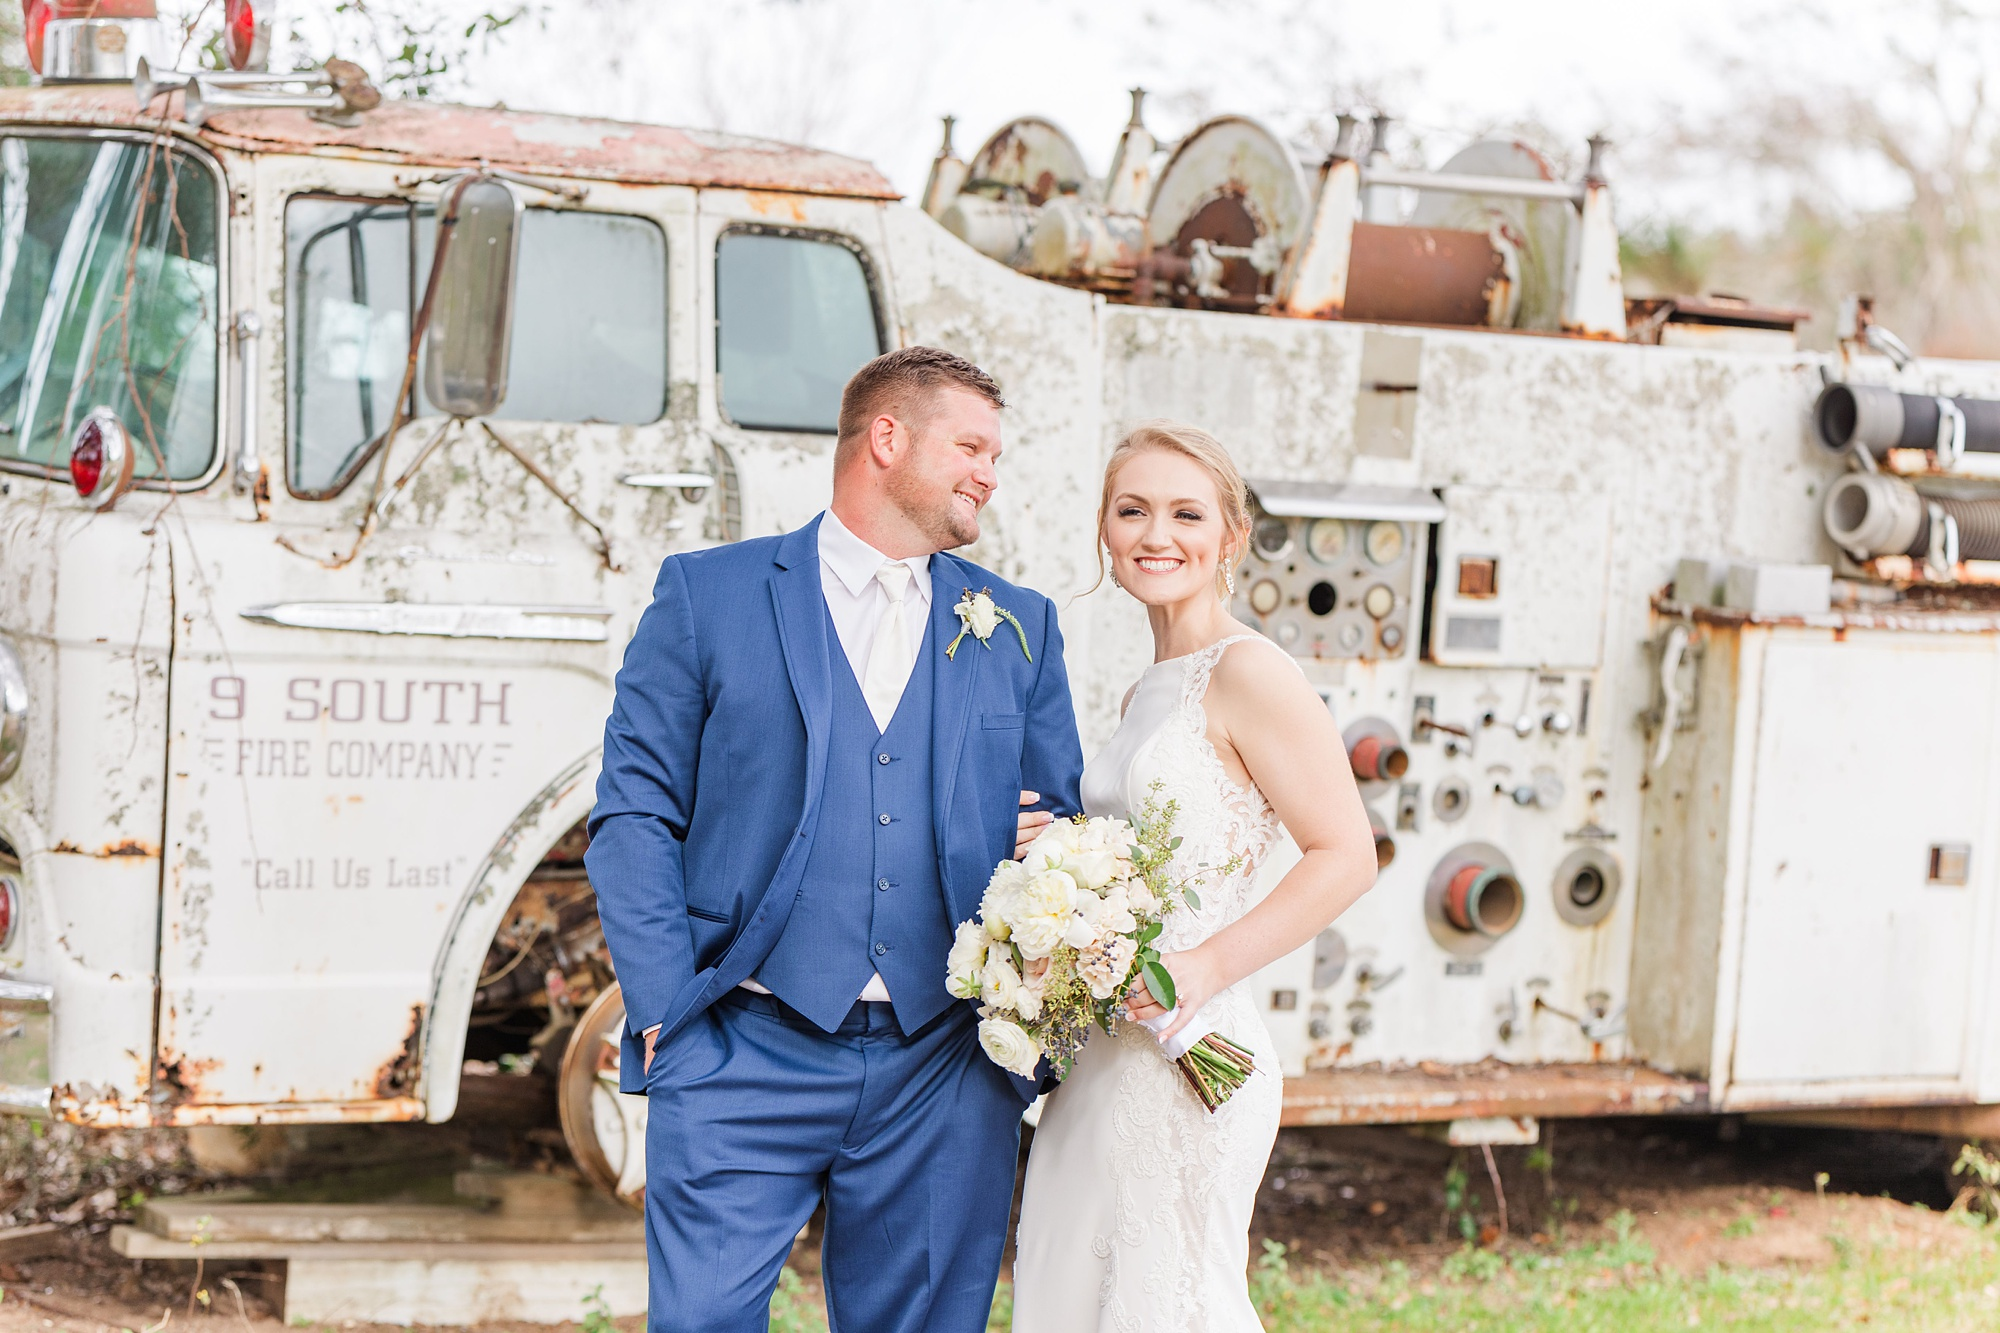 bride and groom pose by old fire engine